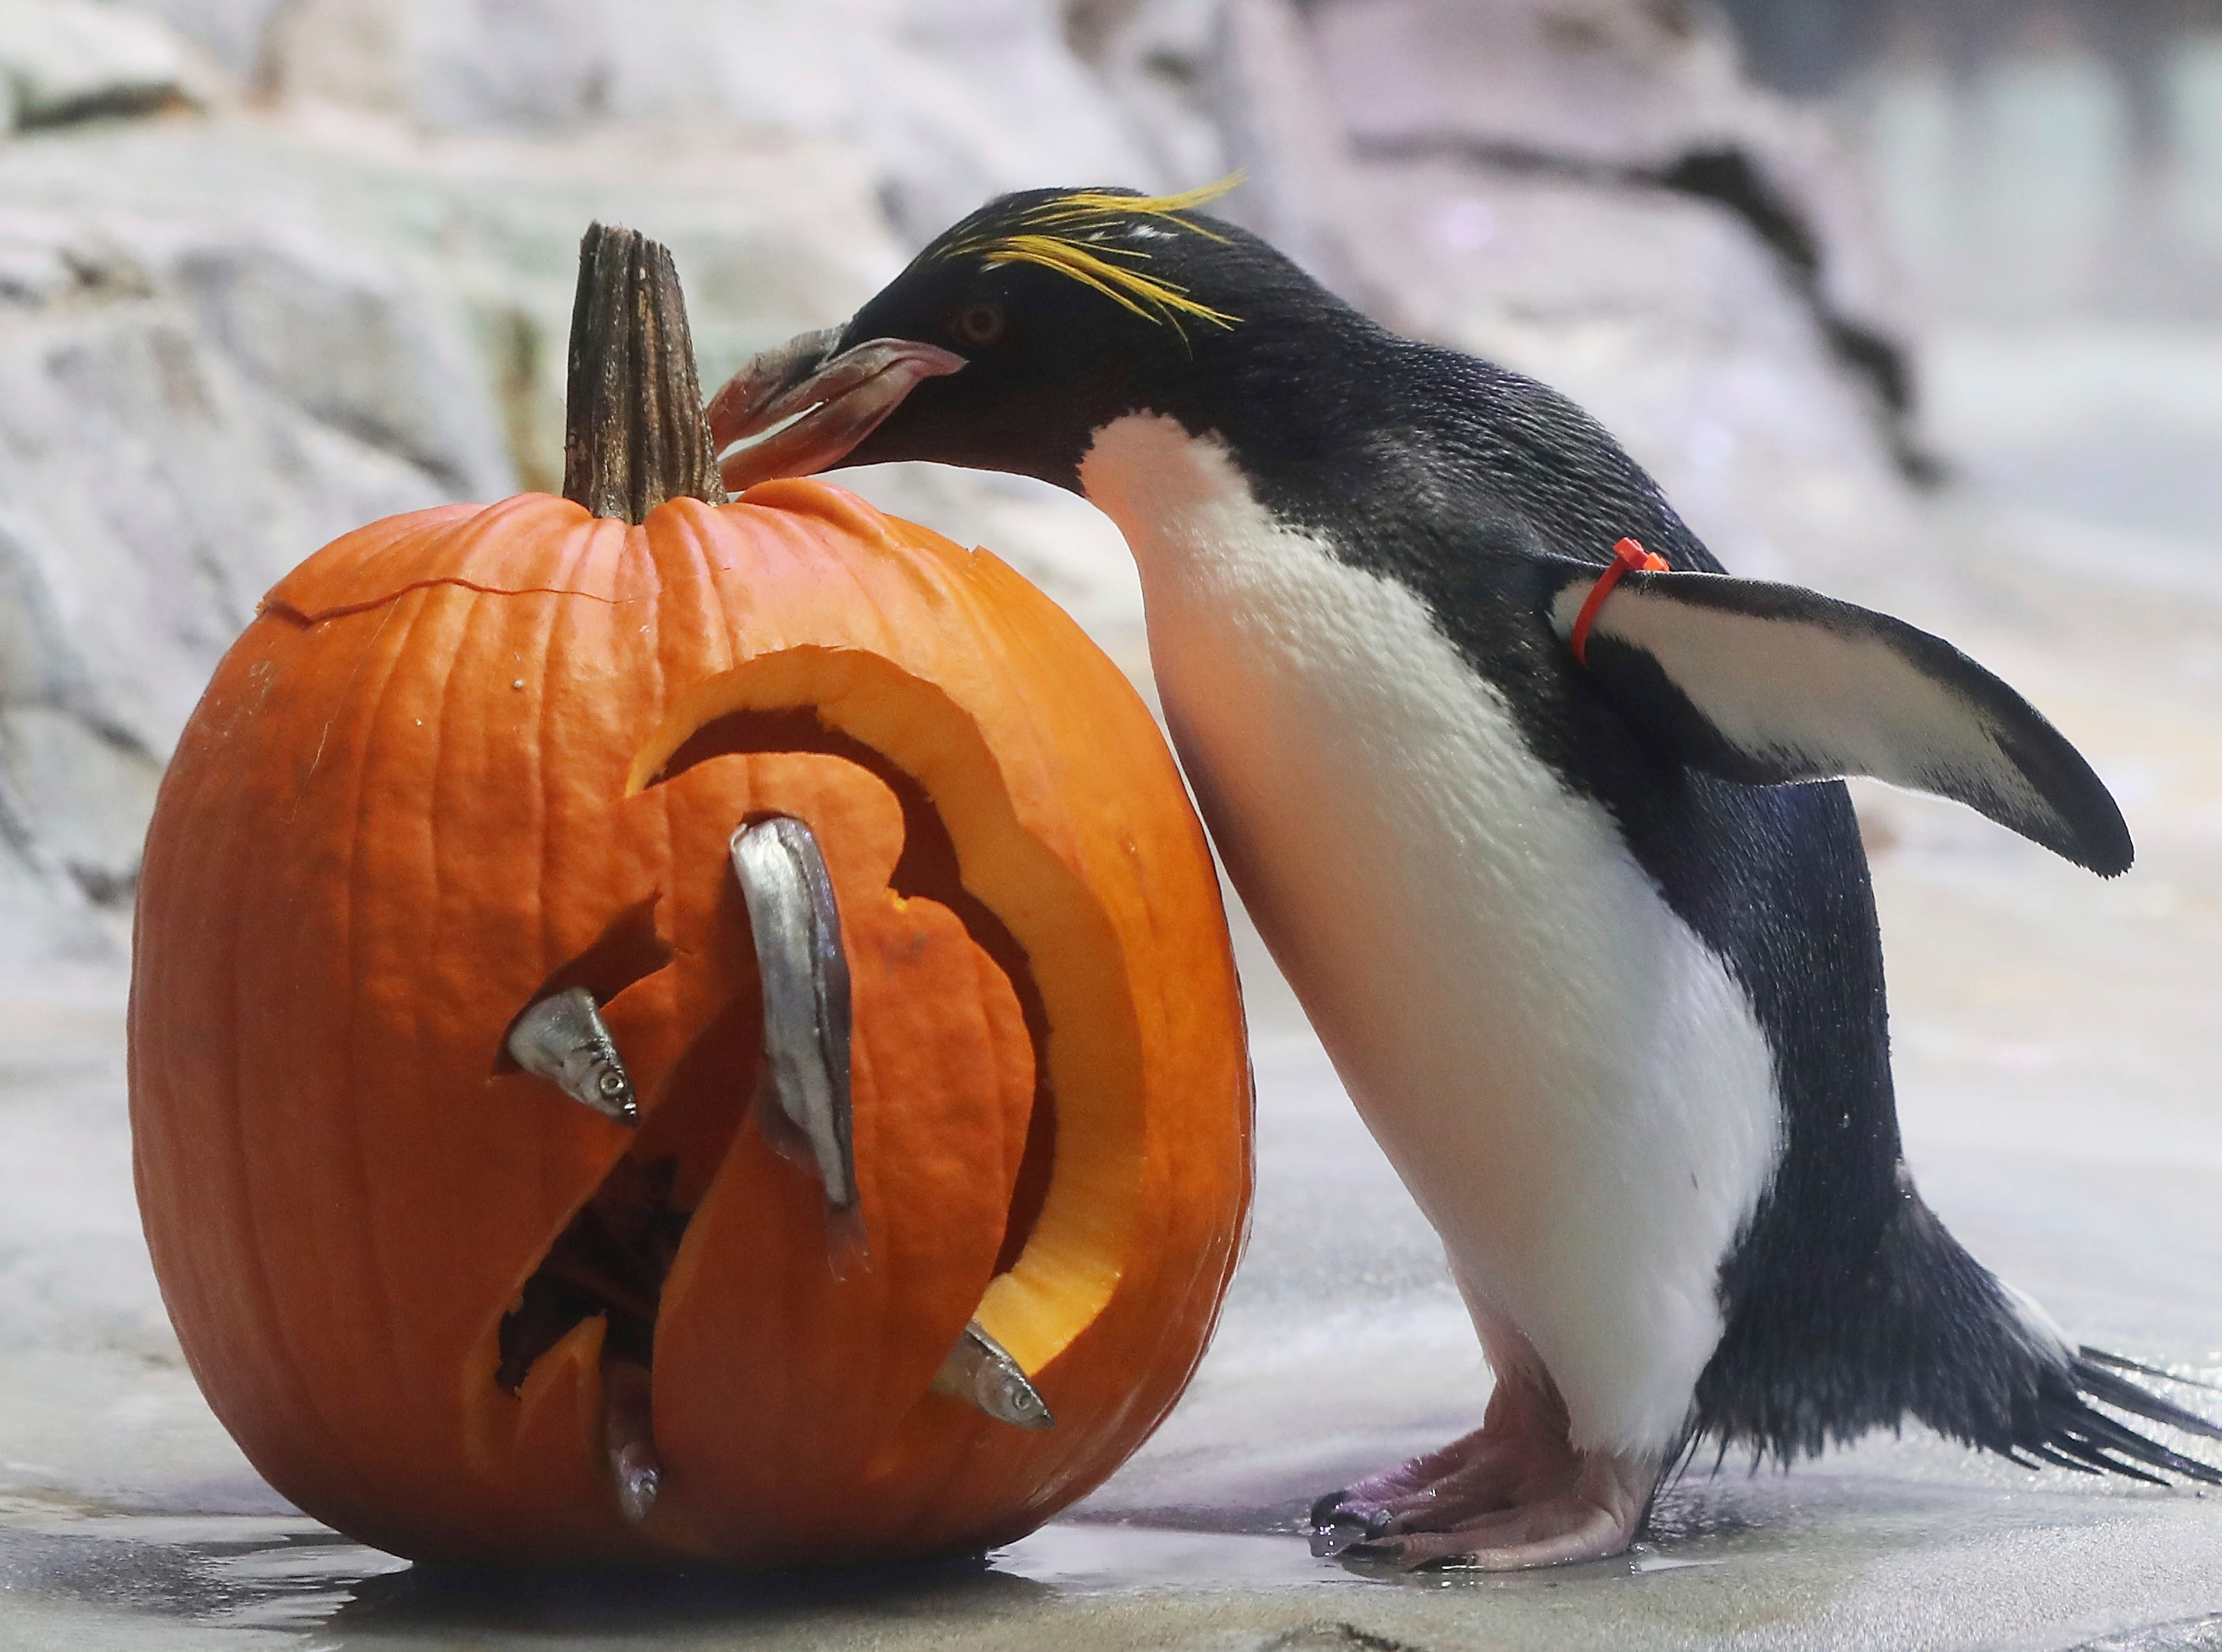 A Macaroni Penguin looks over a fish themed pumpkin at the Detroit Zoo, Wednesday, Oct. 10, 2018, in Royal Oak, Mich. Each year in October as Halloween approaches, some of the animals receive pumpkins filled with treats to eat during the zoo's annual Smashing Pumpkins event. The enrichment items are hidden through out the animals' habitats or prepared and placed in a manner to stimulate natural behaviors. (AP Photo/Carlos Osorio) ORG XMIT: MICO203